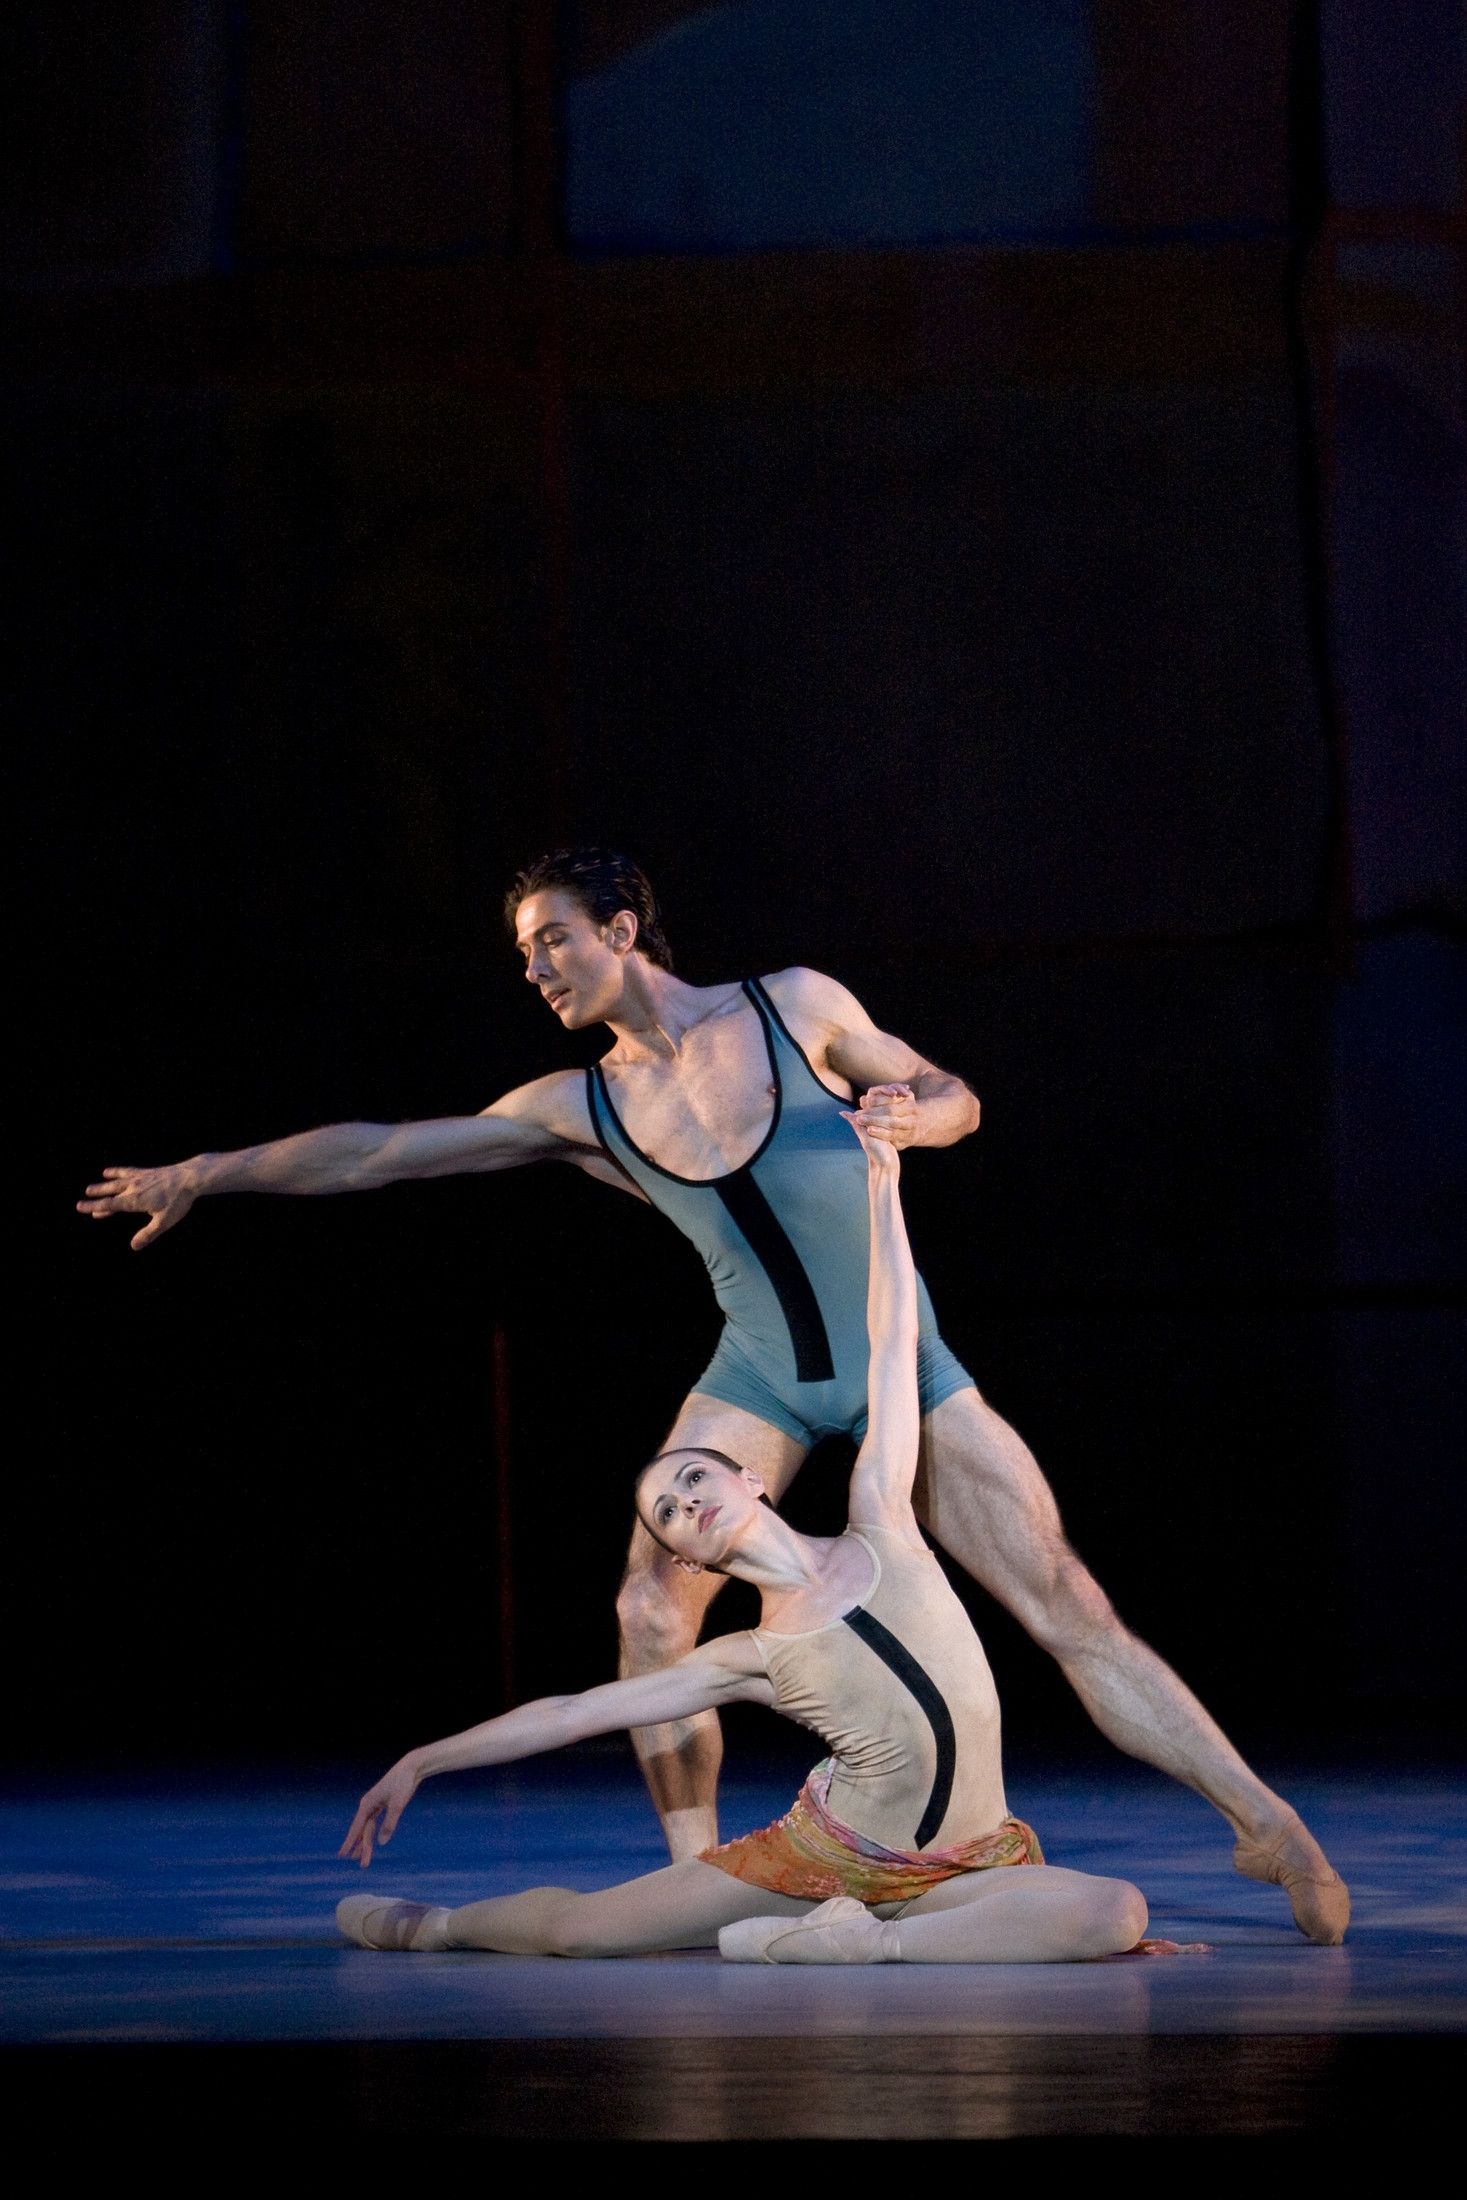 two dancers on stage in a ballet with dance clothes